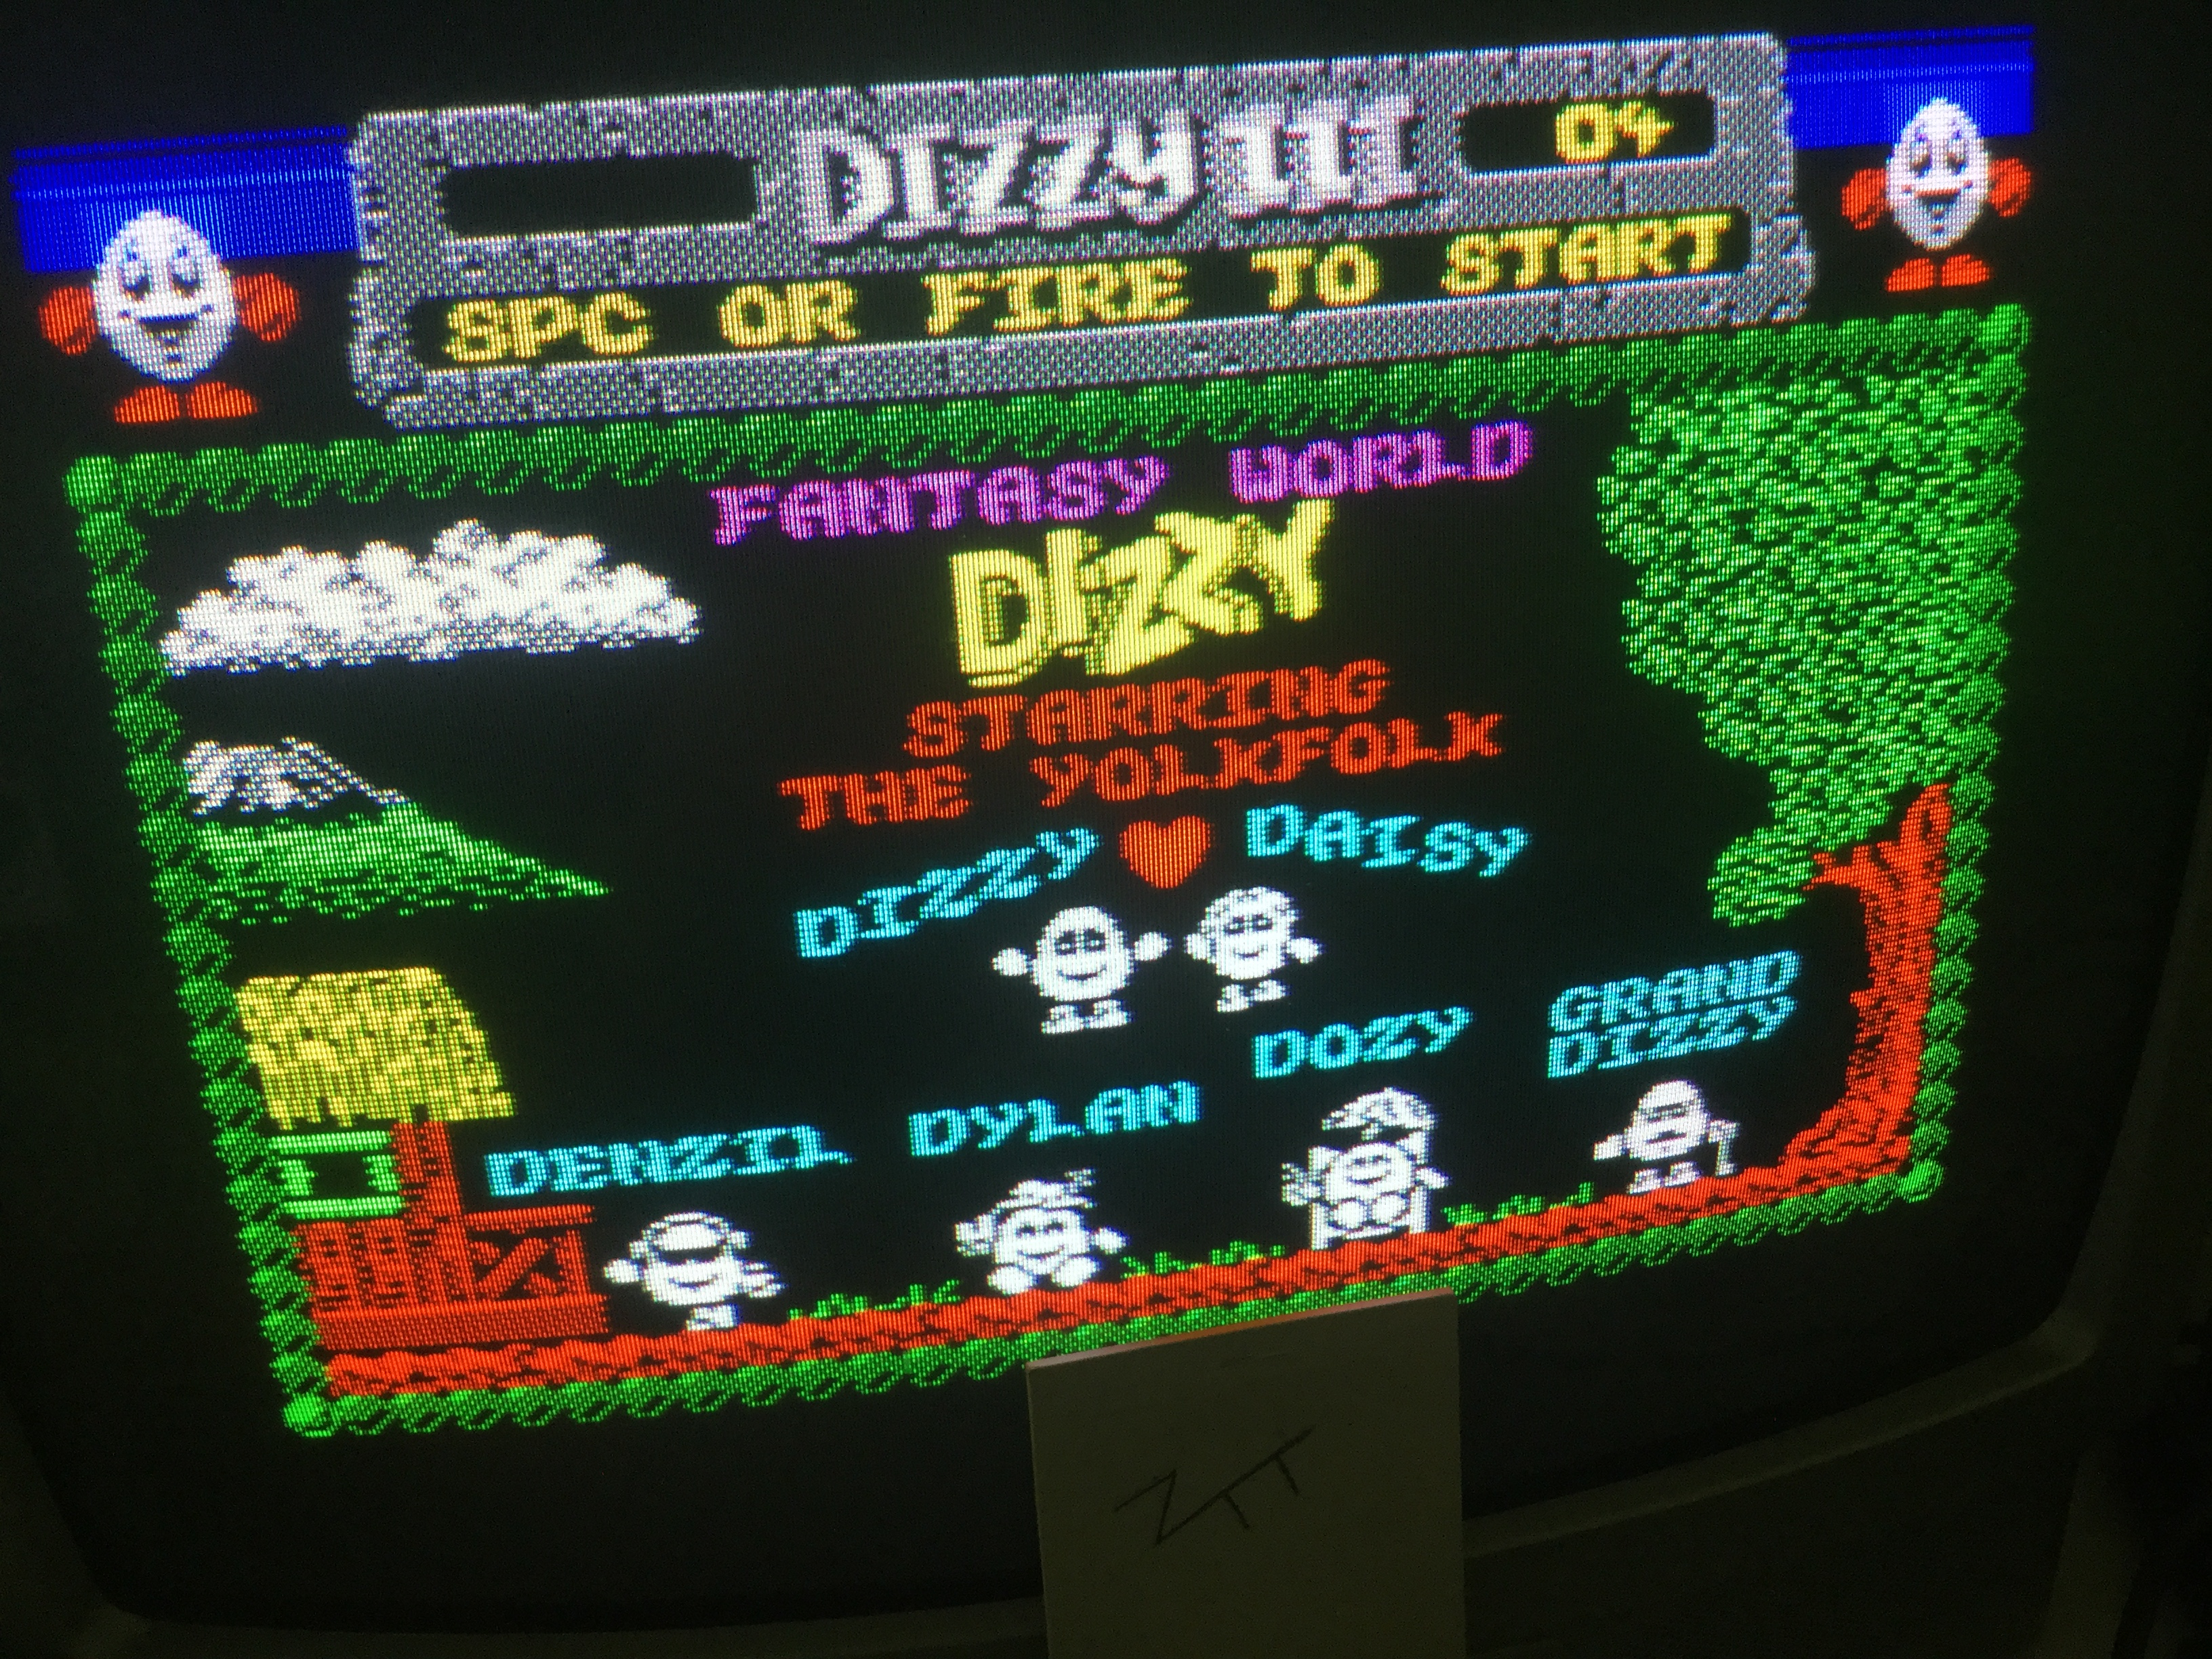 Frankie: Fantasy World Dizzy [Coins] (ZX Spectrum) 4 points on 2019-06-03 12:17:29